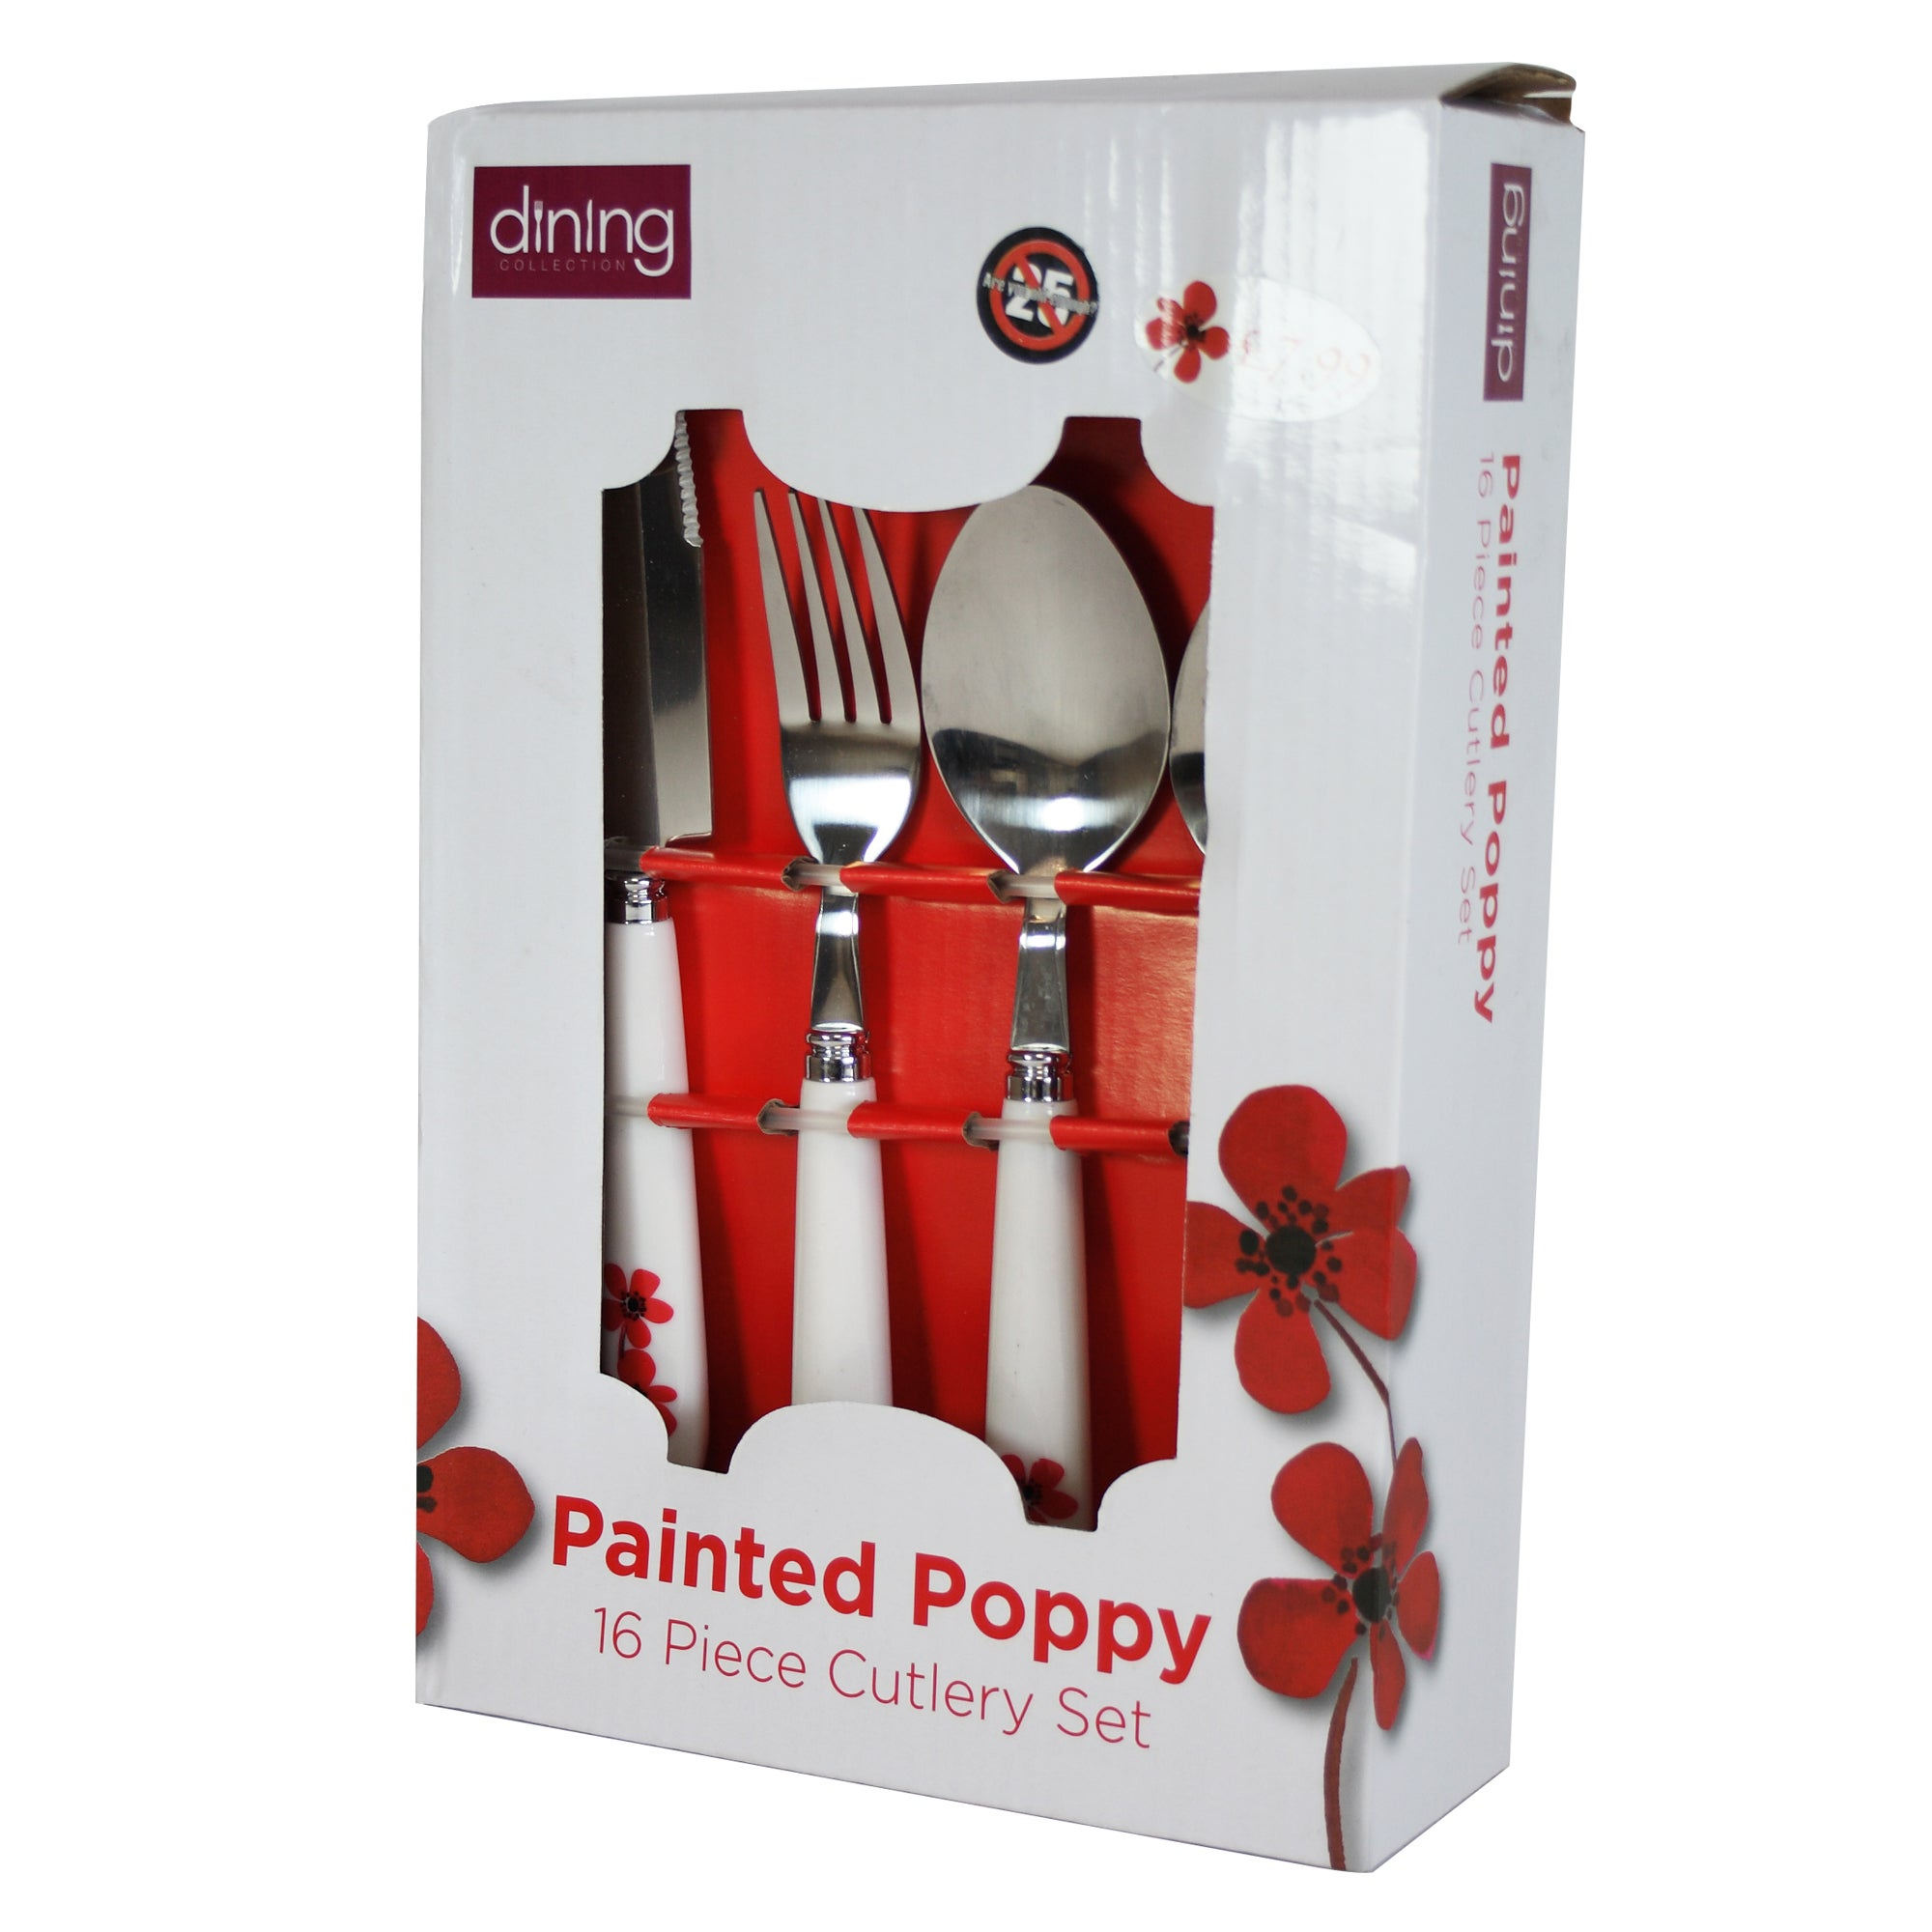 Red Painted Poppy 16 Piece Cutlery Set